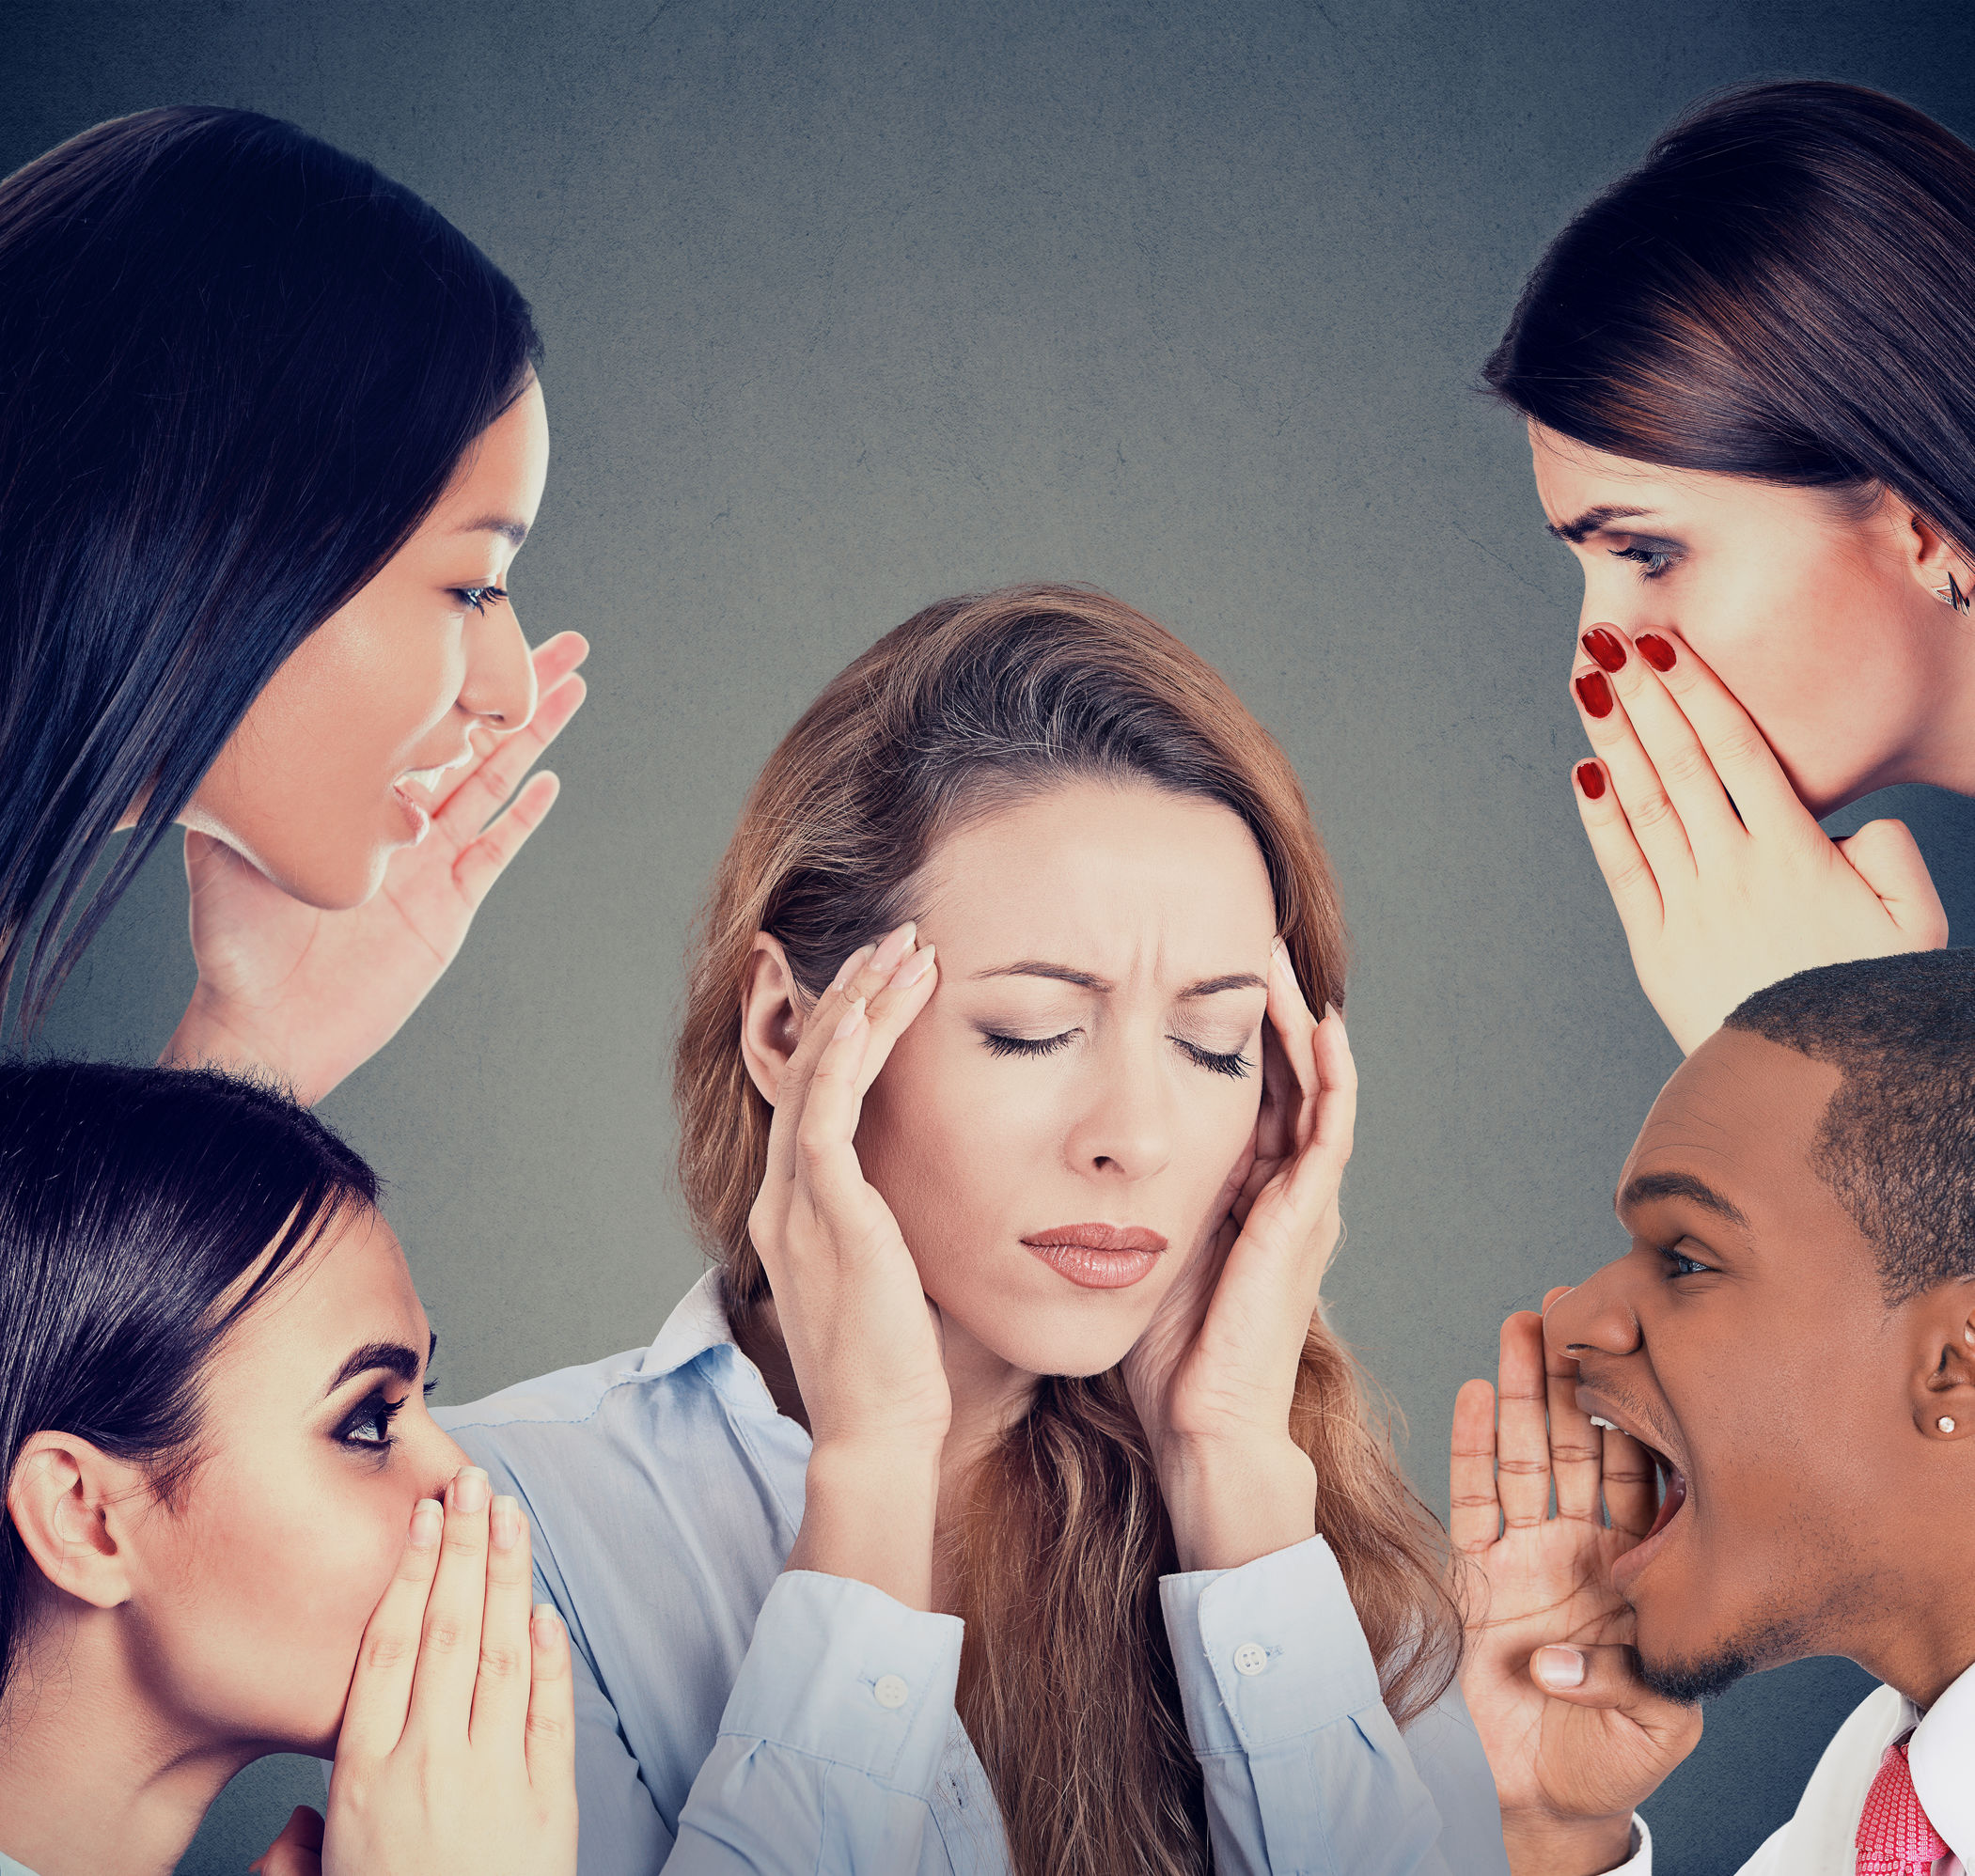 Tackling Workplace Drama